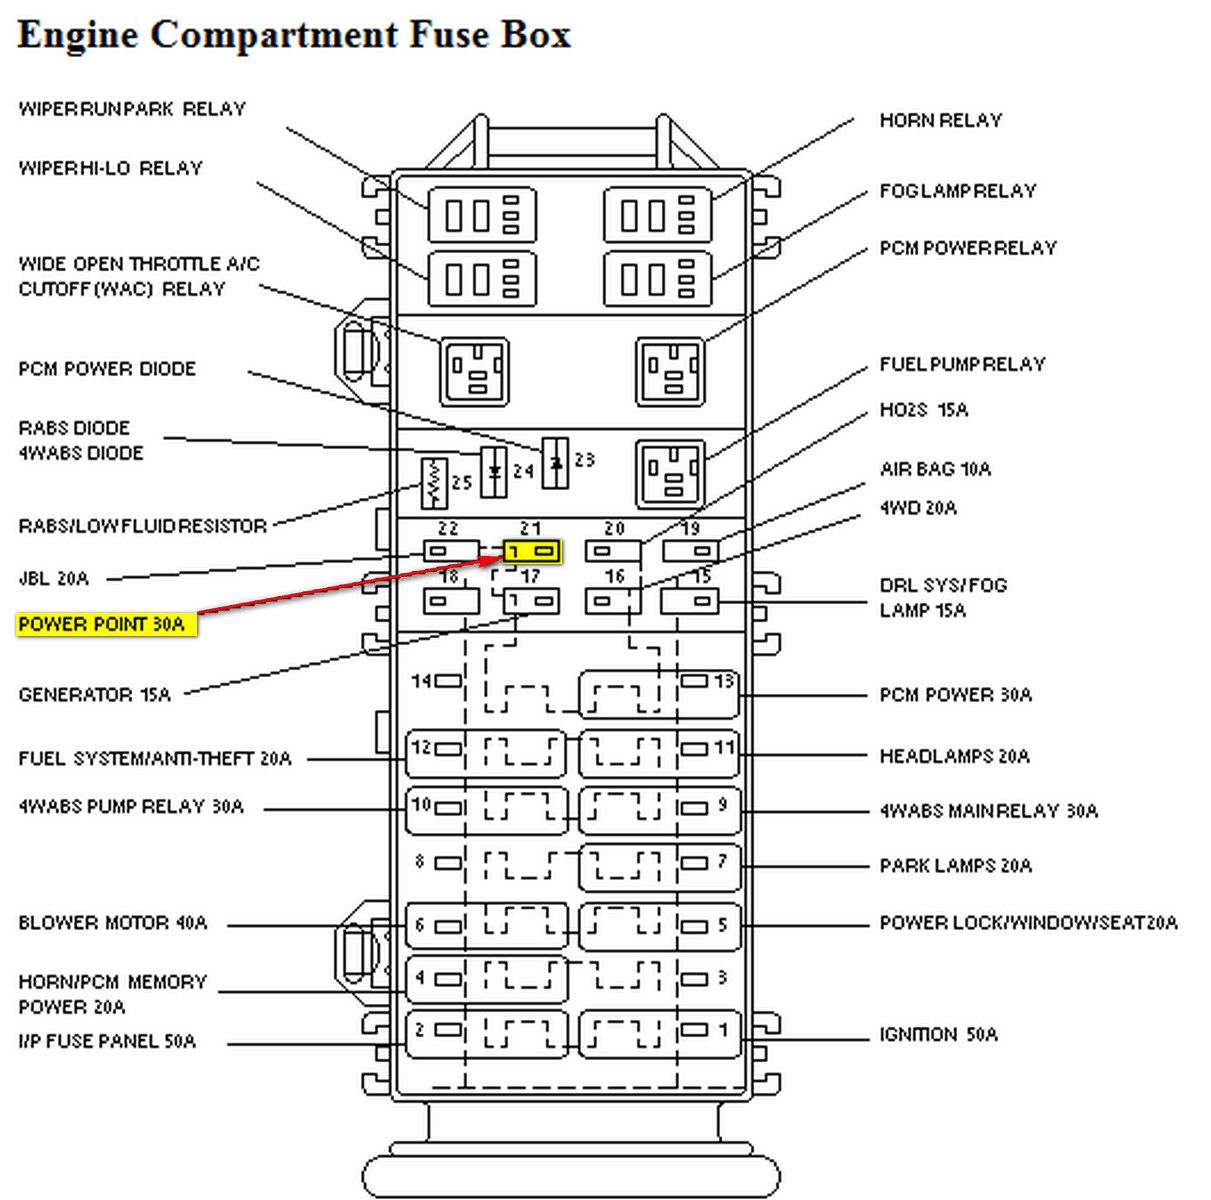 8a55967da7ae1bd251b795845886bd24 2002 ford ranger fuse diagram 1997 ford ranger fuse box diagram 2002 ford ranger fuse box diagram at reclaimingppi.co